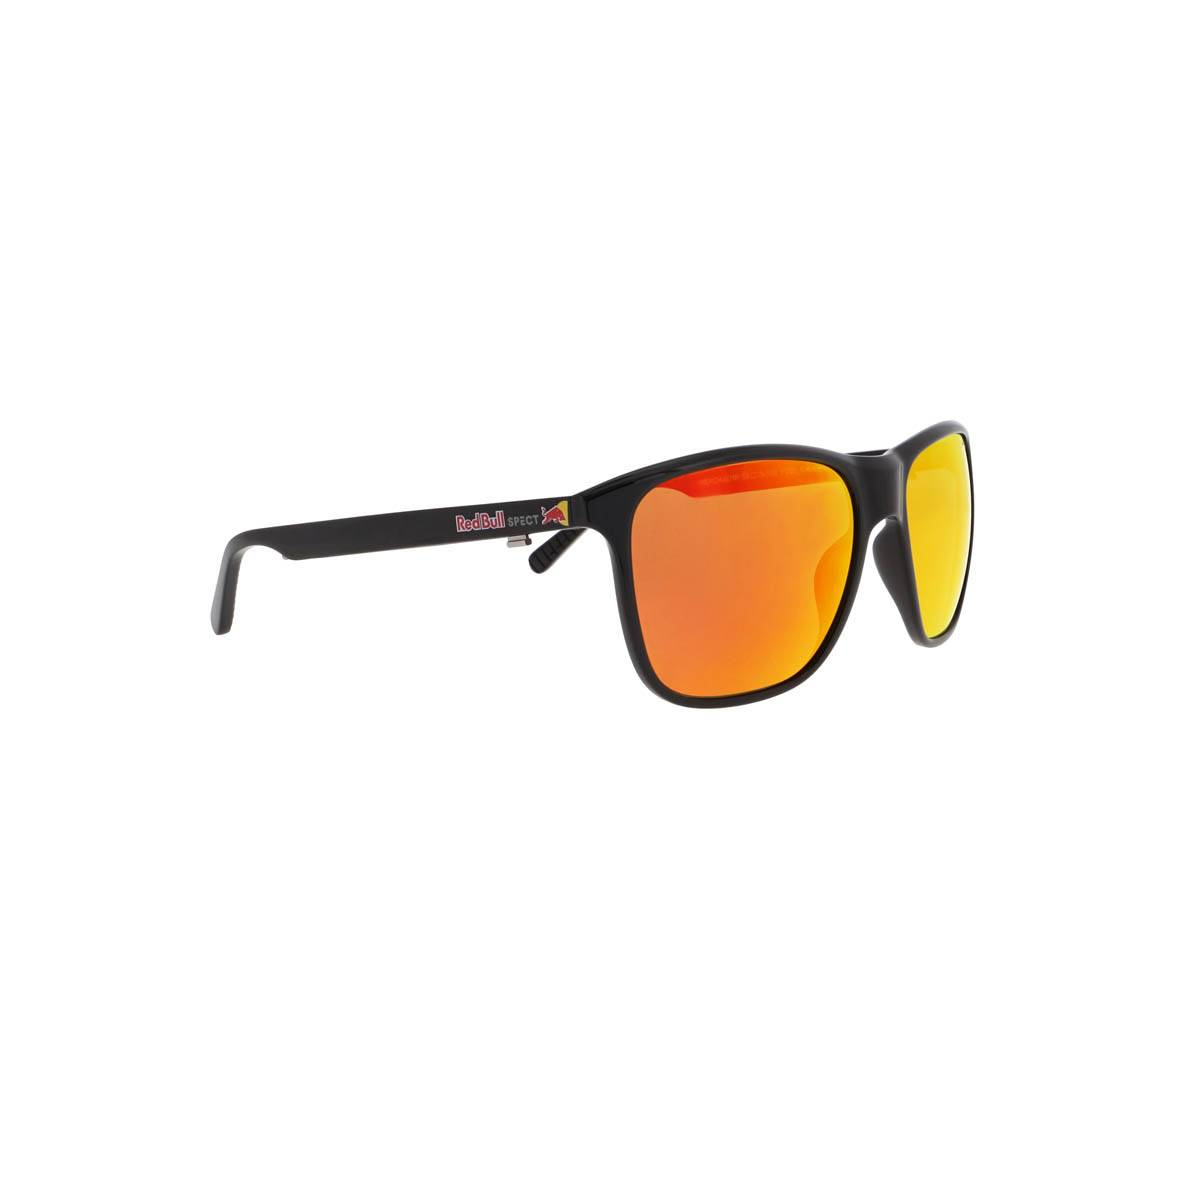 Bull REACH Occhiali da sole Black Brown